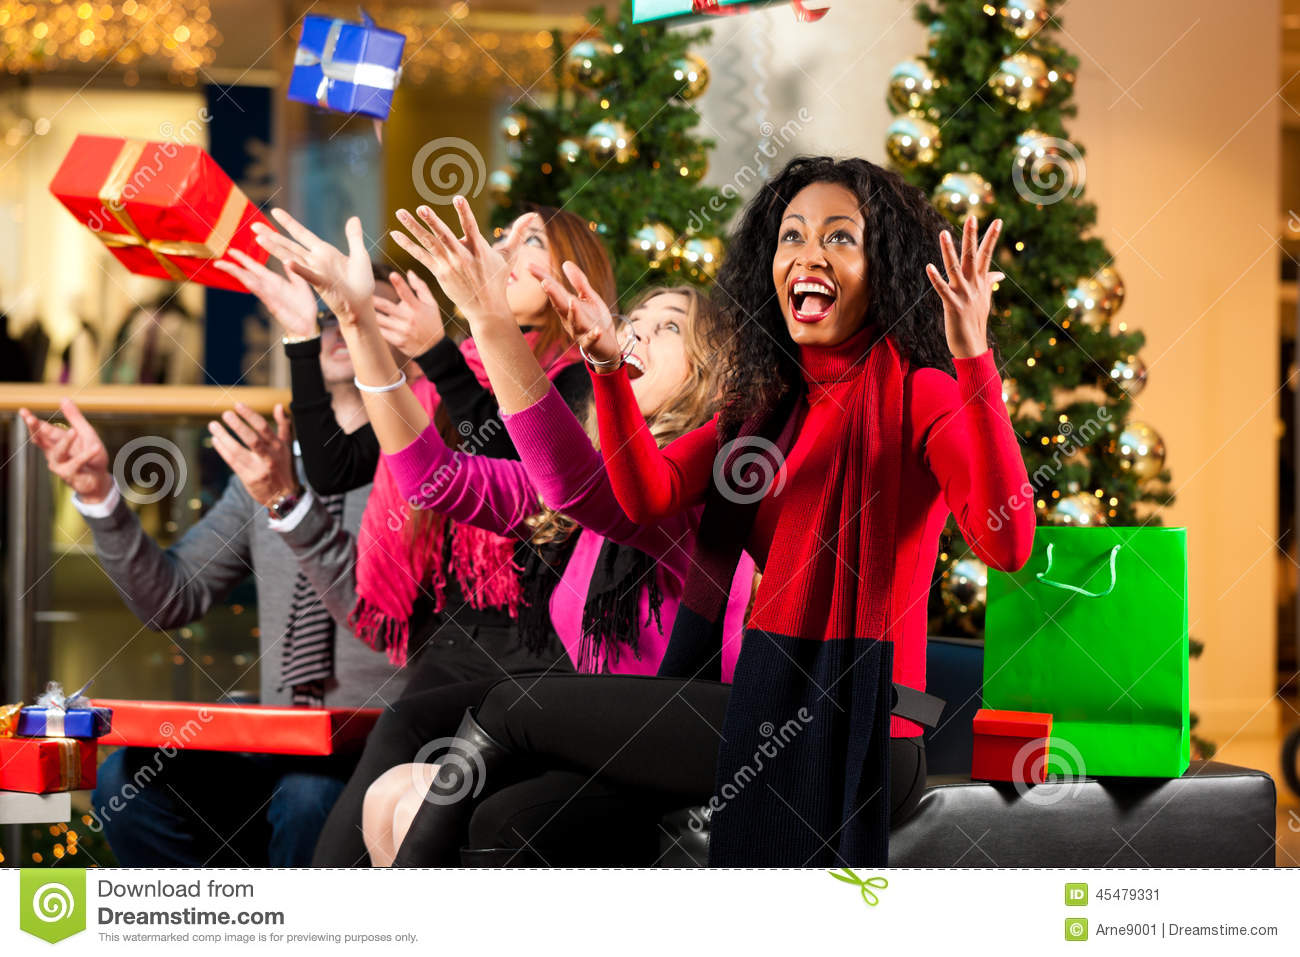 Black People Christmas Pictures.Christmas Shopping Friends In Mall Stock Image Image Of